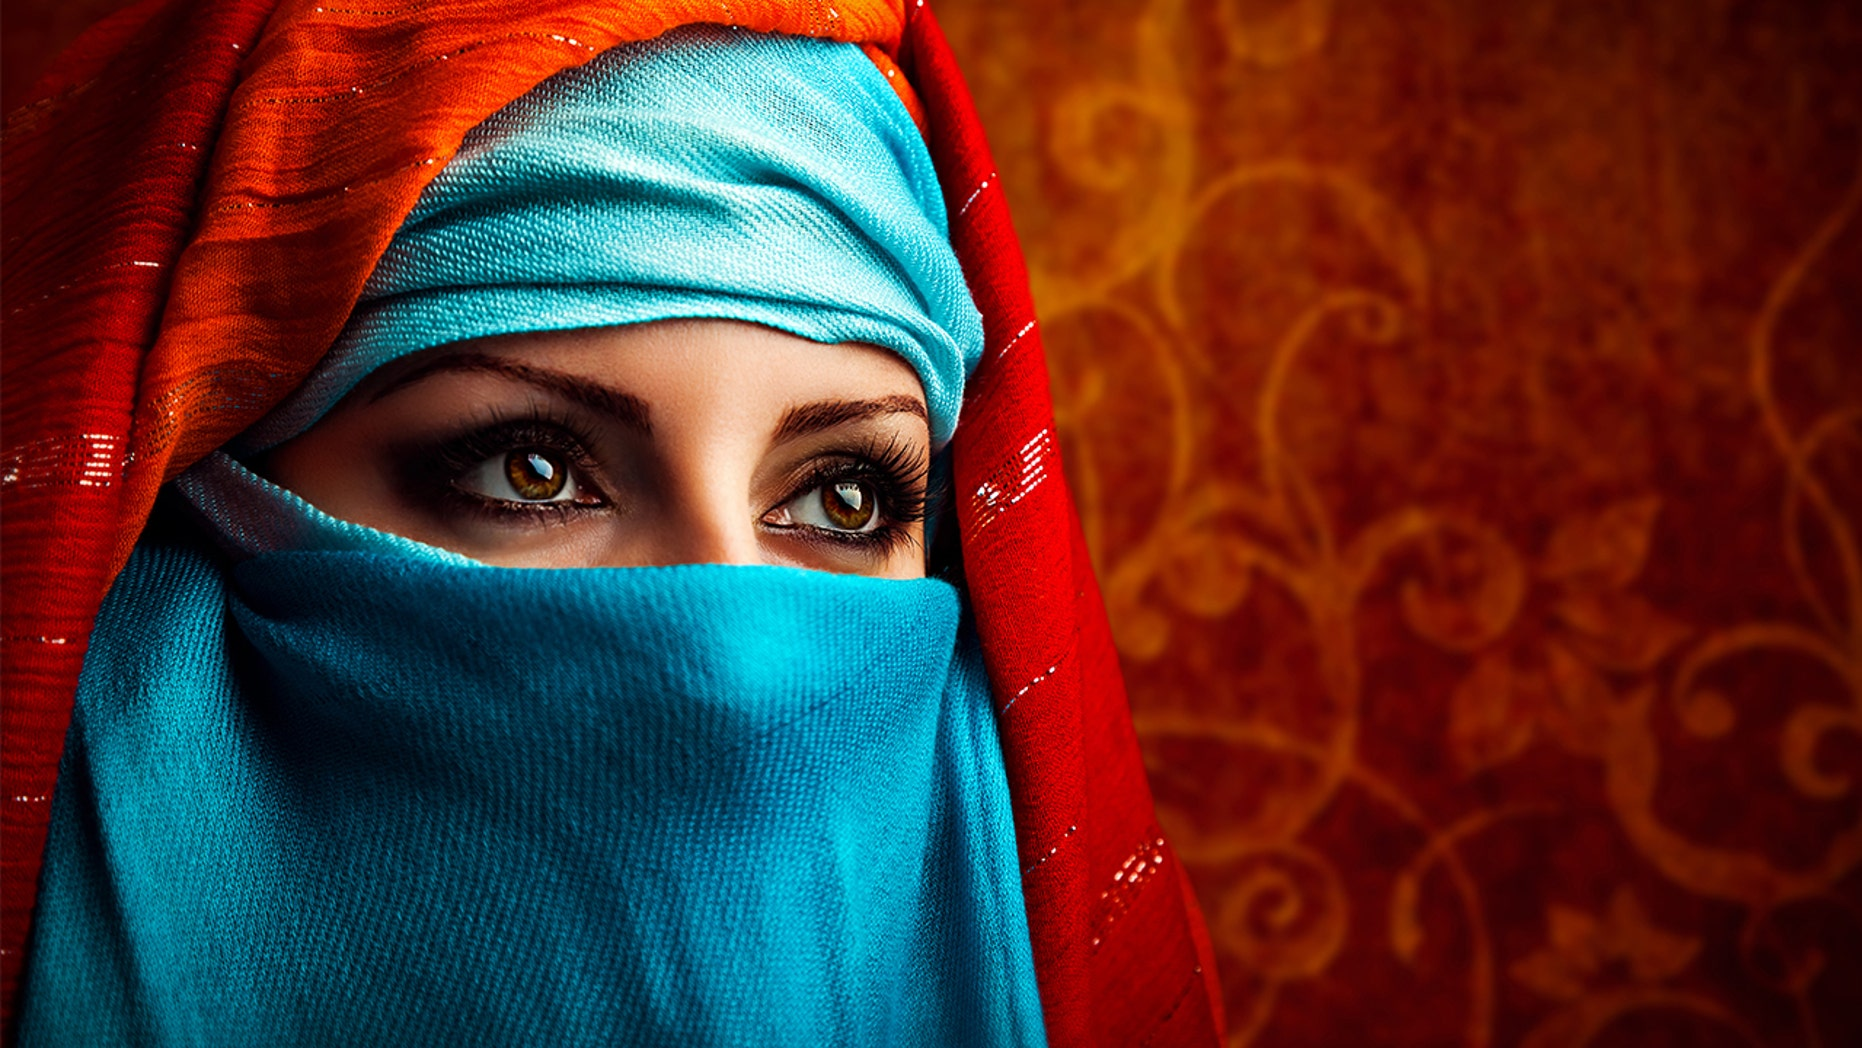 A Muslim woman is the first hijab-wearing model to appear on the cover of Allure